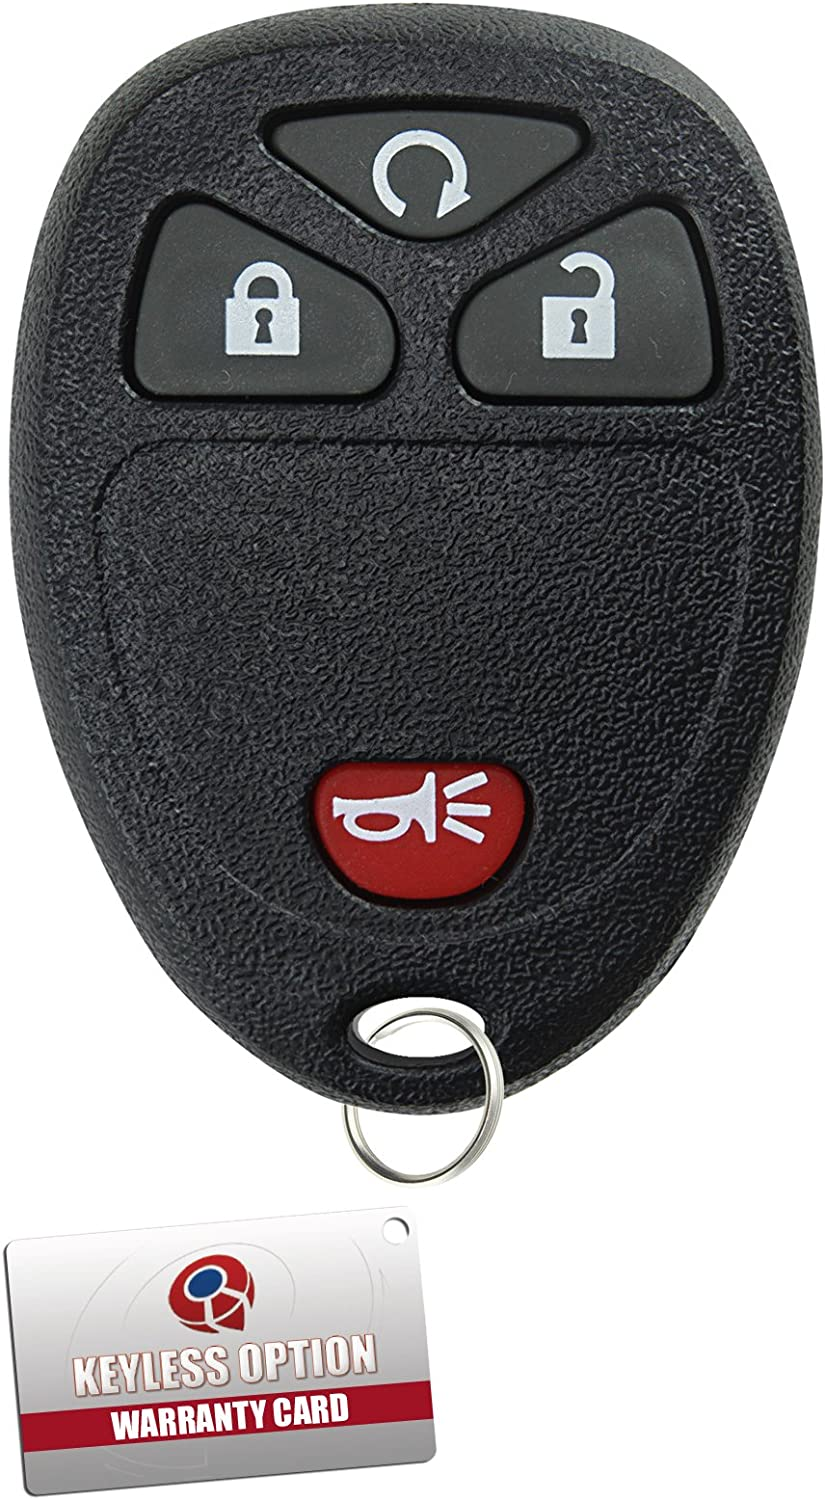 KeylessOption Keyless Entry Remote Control Car Key Fob Replacement for 15114374 Blue